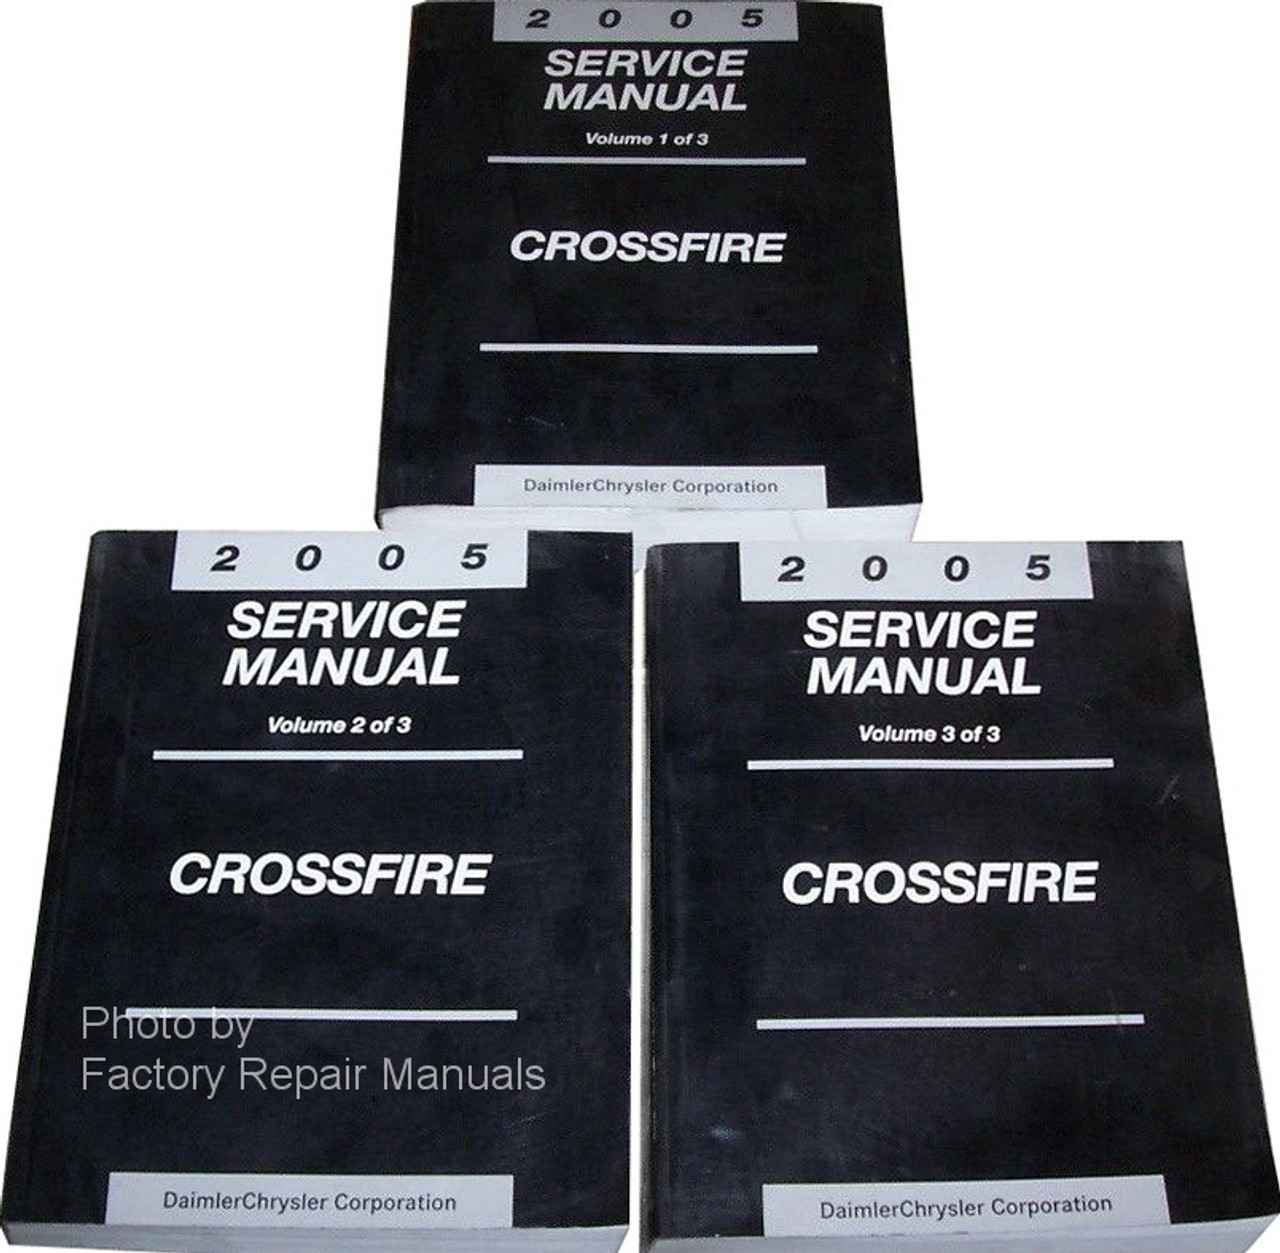 2005 Chrysler Crossfire Factory Service Manual Set